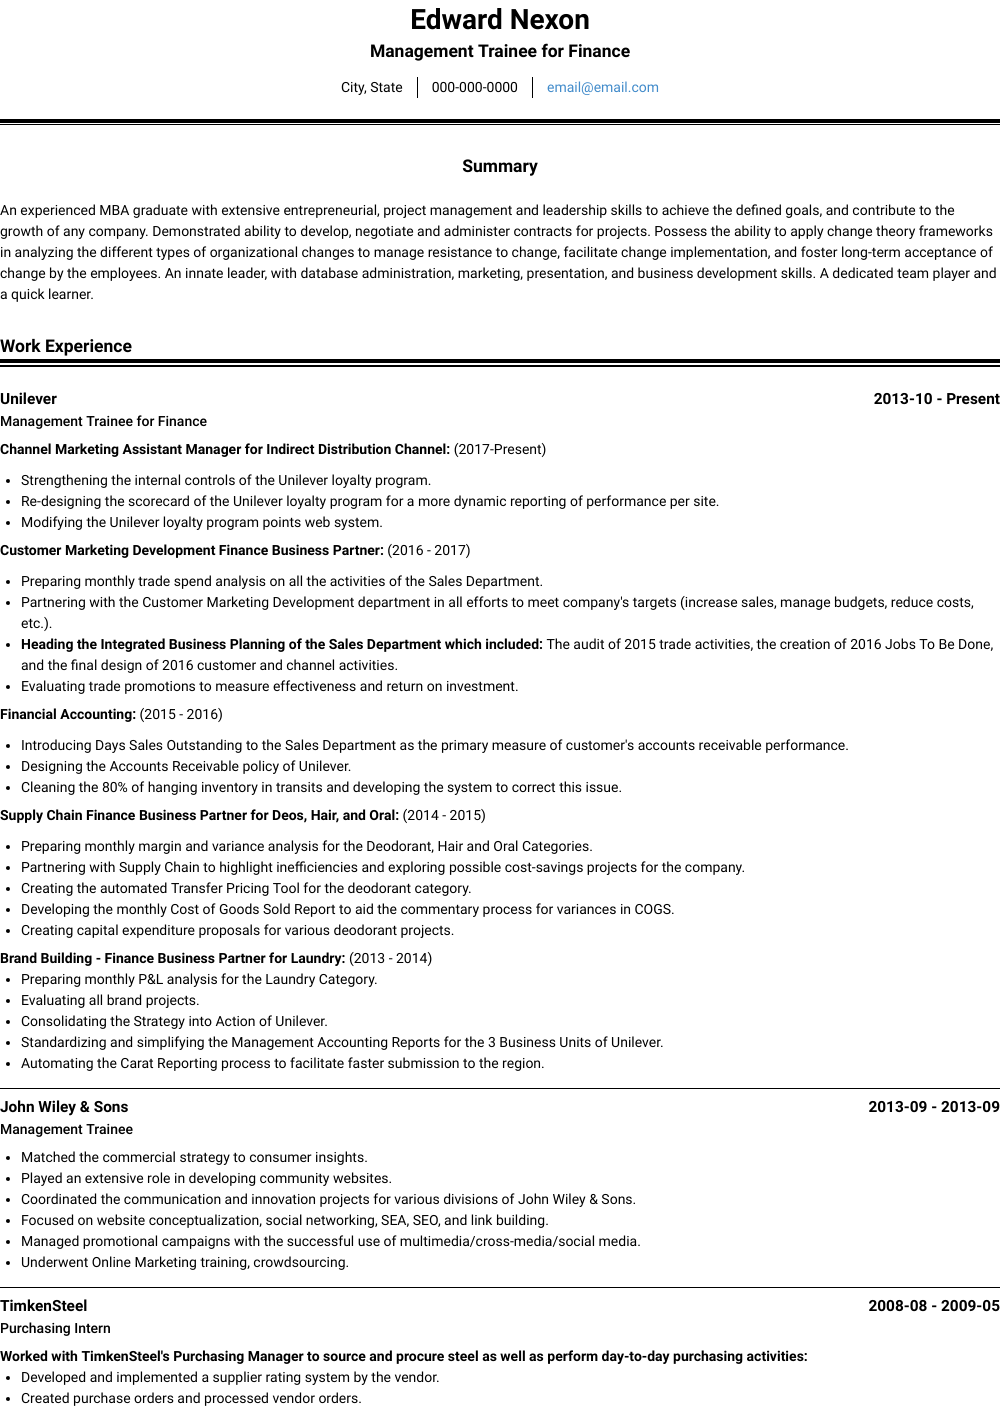 Management Trainee For Finance Resume Sample and Template